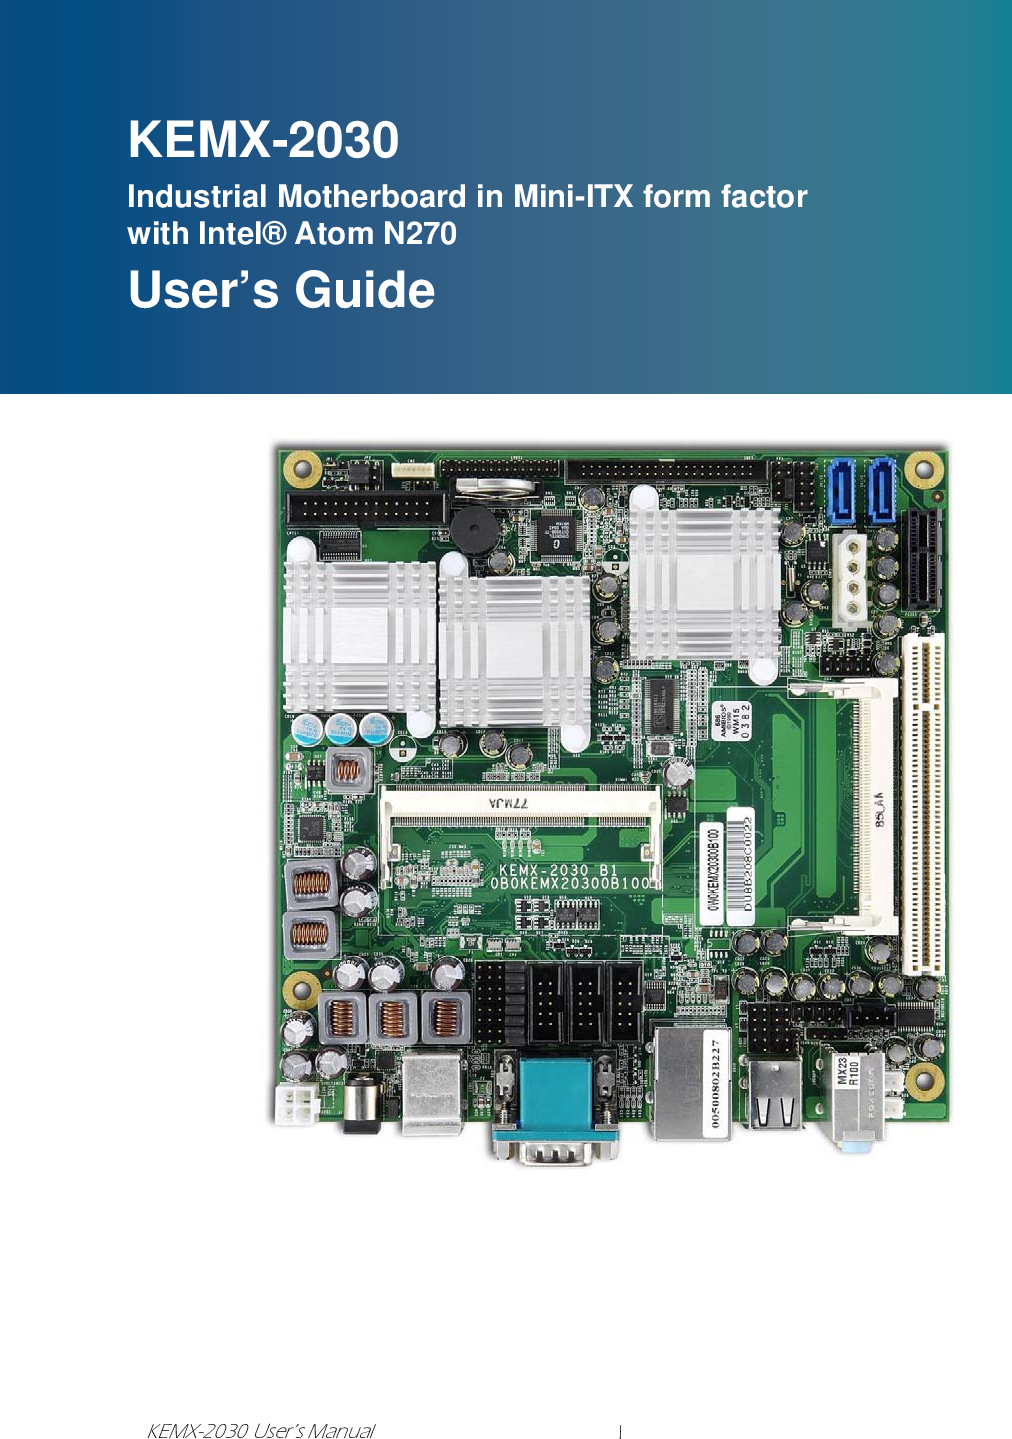 Intel KEMX 2030 Chapter 1 User Manual To The 07fb4094 2616